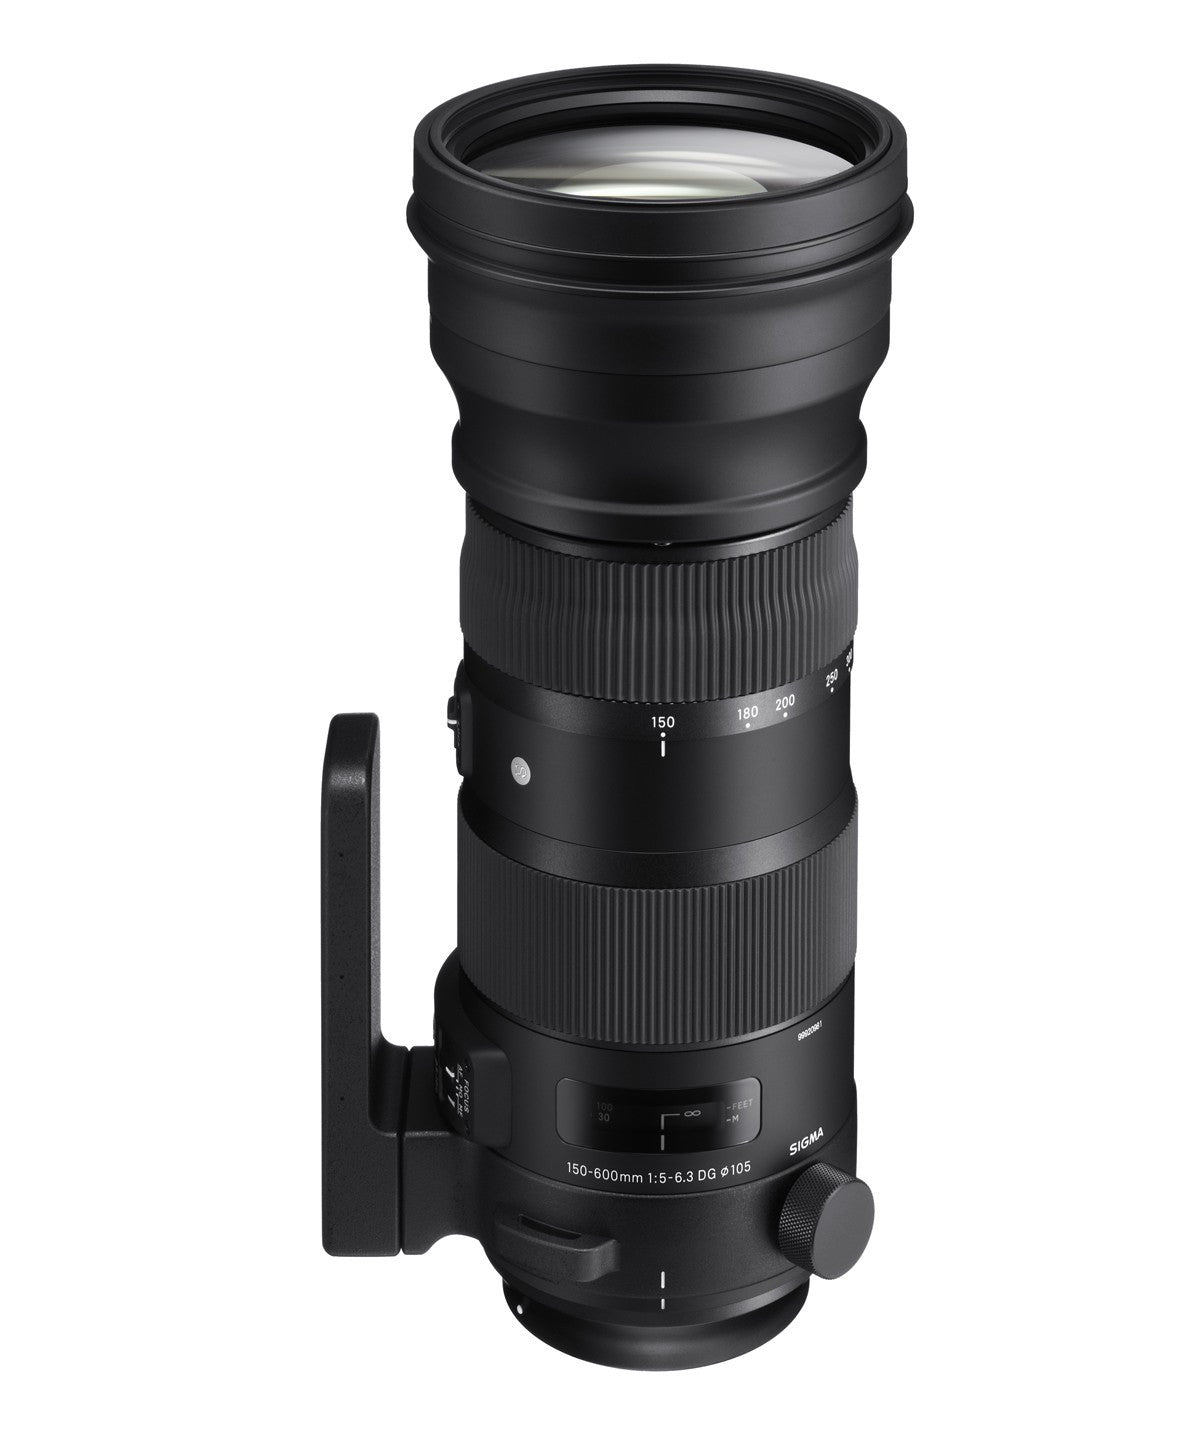 Sigma 150-600mm F5-6.3 SPORTS DG OS HSM (Canon) - Photo-Video - Sigma - Helix Camera